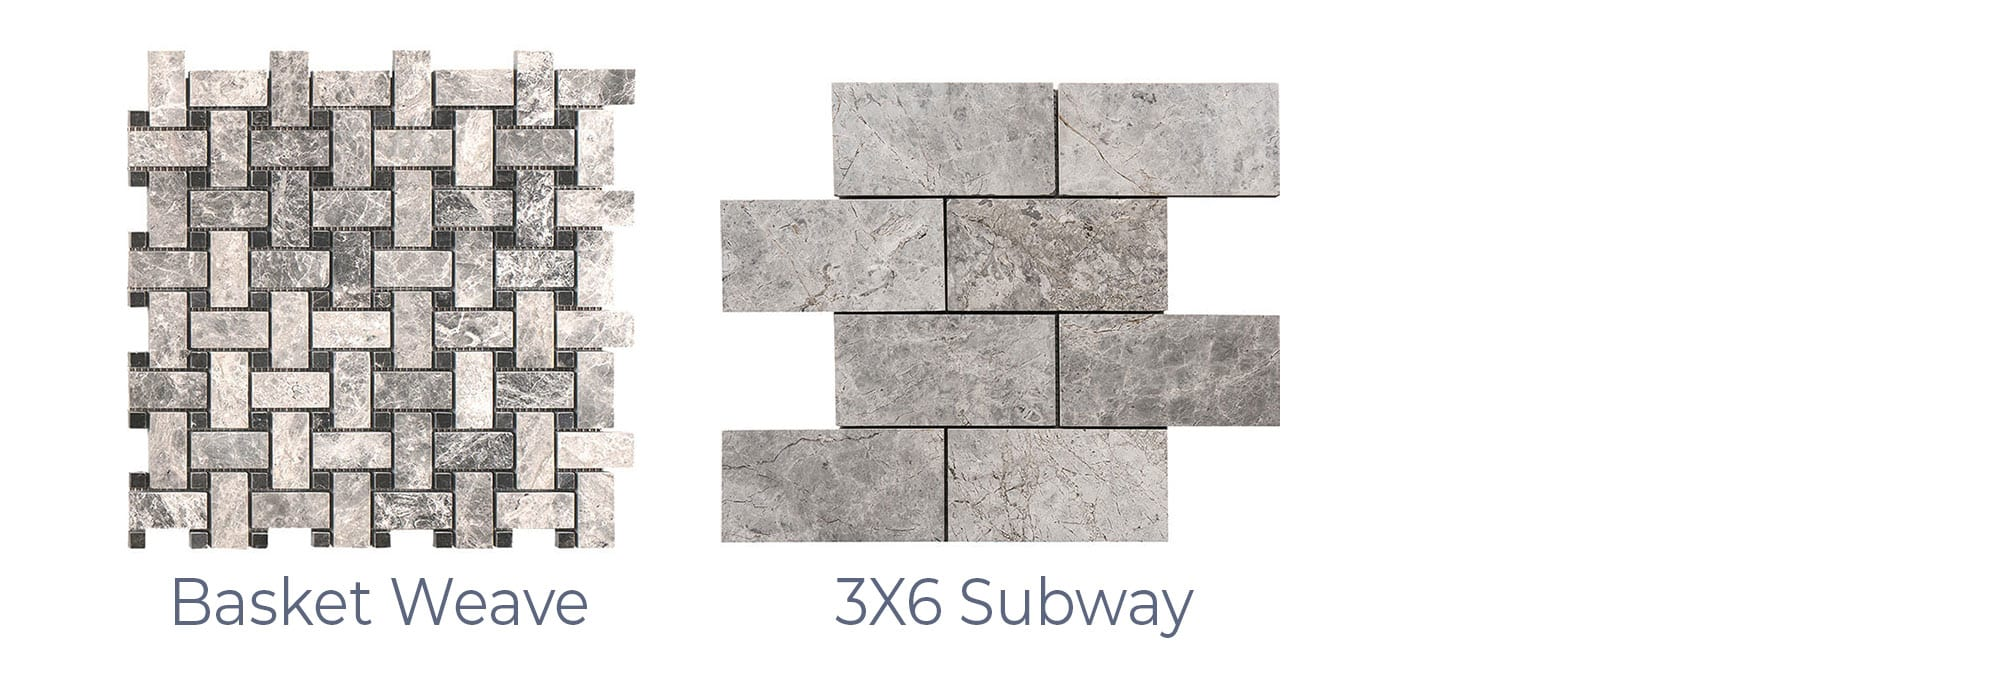 Stoneline-Group-Tundra-Grey-Travertine-Marble-Collection-Marble-Mosaic-Basket-Weave-3X6-Subway-Pictures